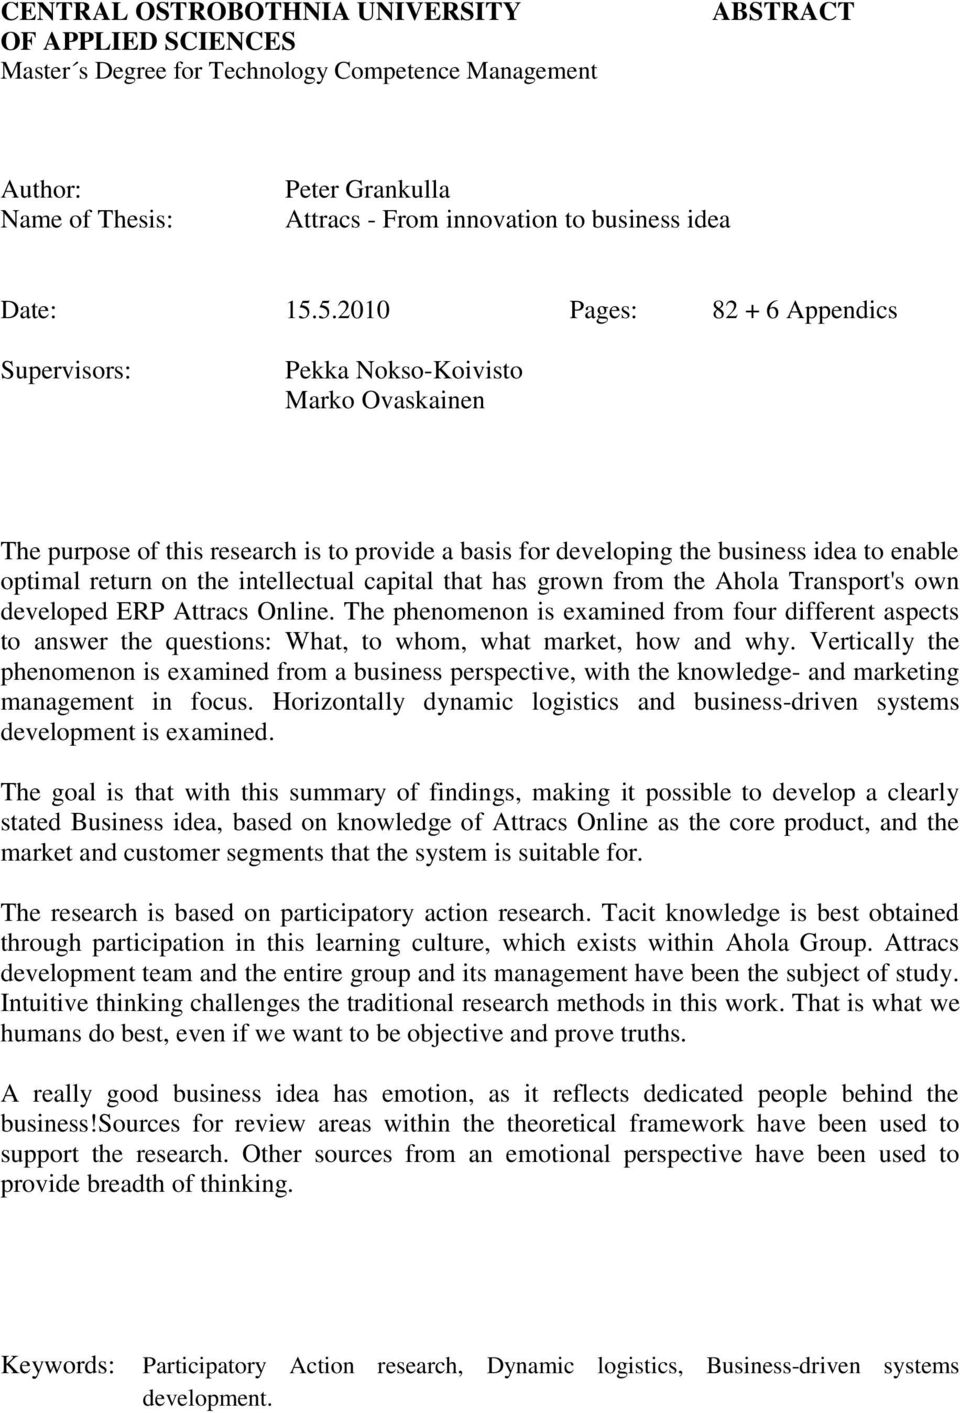 5.2010 Pages: 82 + 6 Appendics Supervisors: Pekka Nokso-Koivisto Marko Ovaskainen The purpose of this research is to provide a basis for developing the business idea to enable optimal return on the